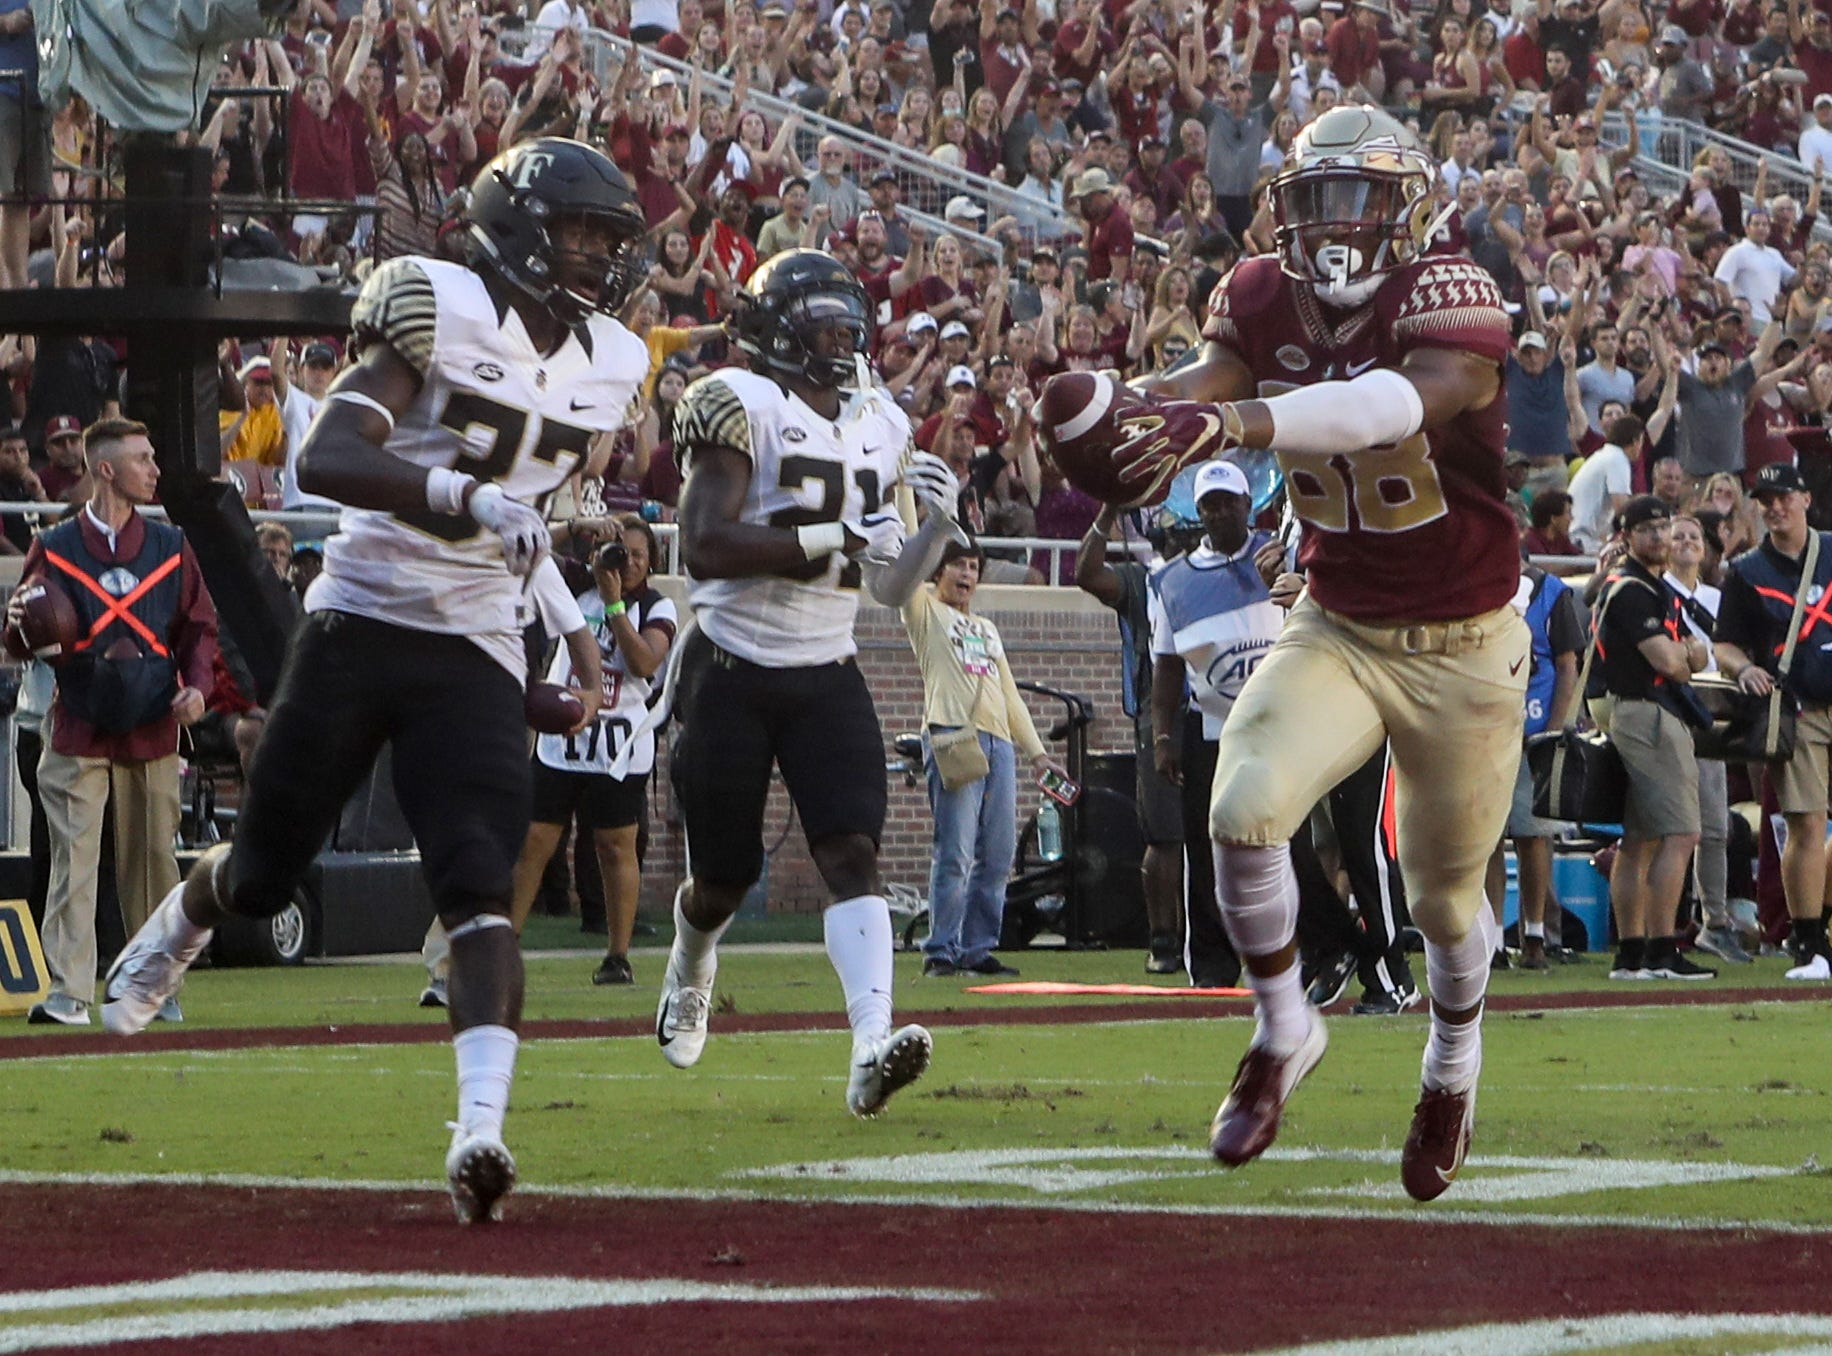 Florida State Seminoles wide receiver Tre'Shaun Harrison (88) scores a touchdown during FSU's homecoming game against Wake Forest at Doak S. Campbell Stadium Saturday, Oct. 20, 2018.